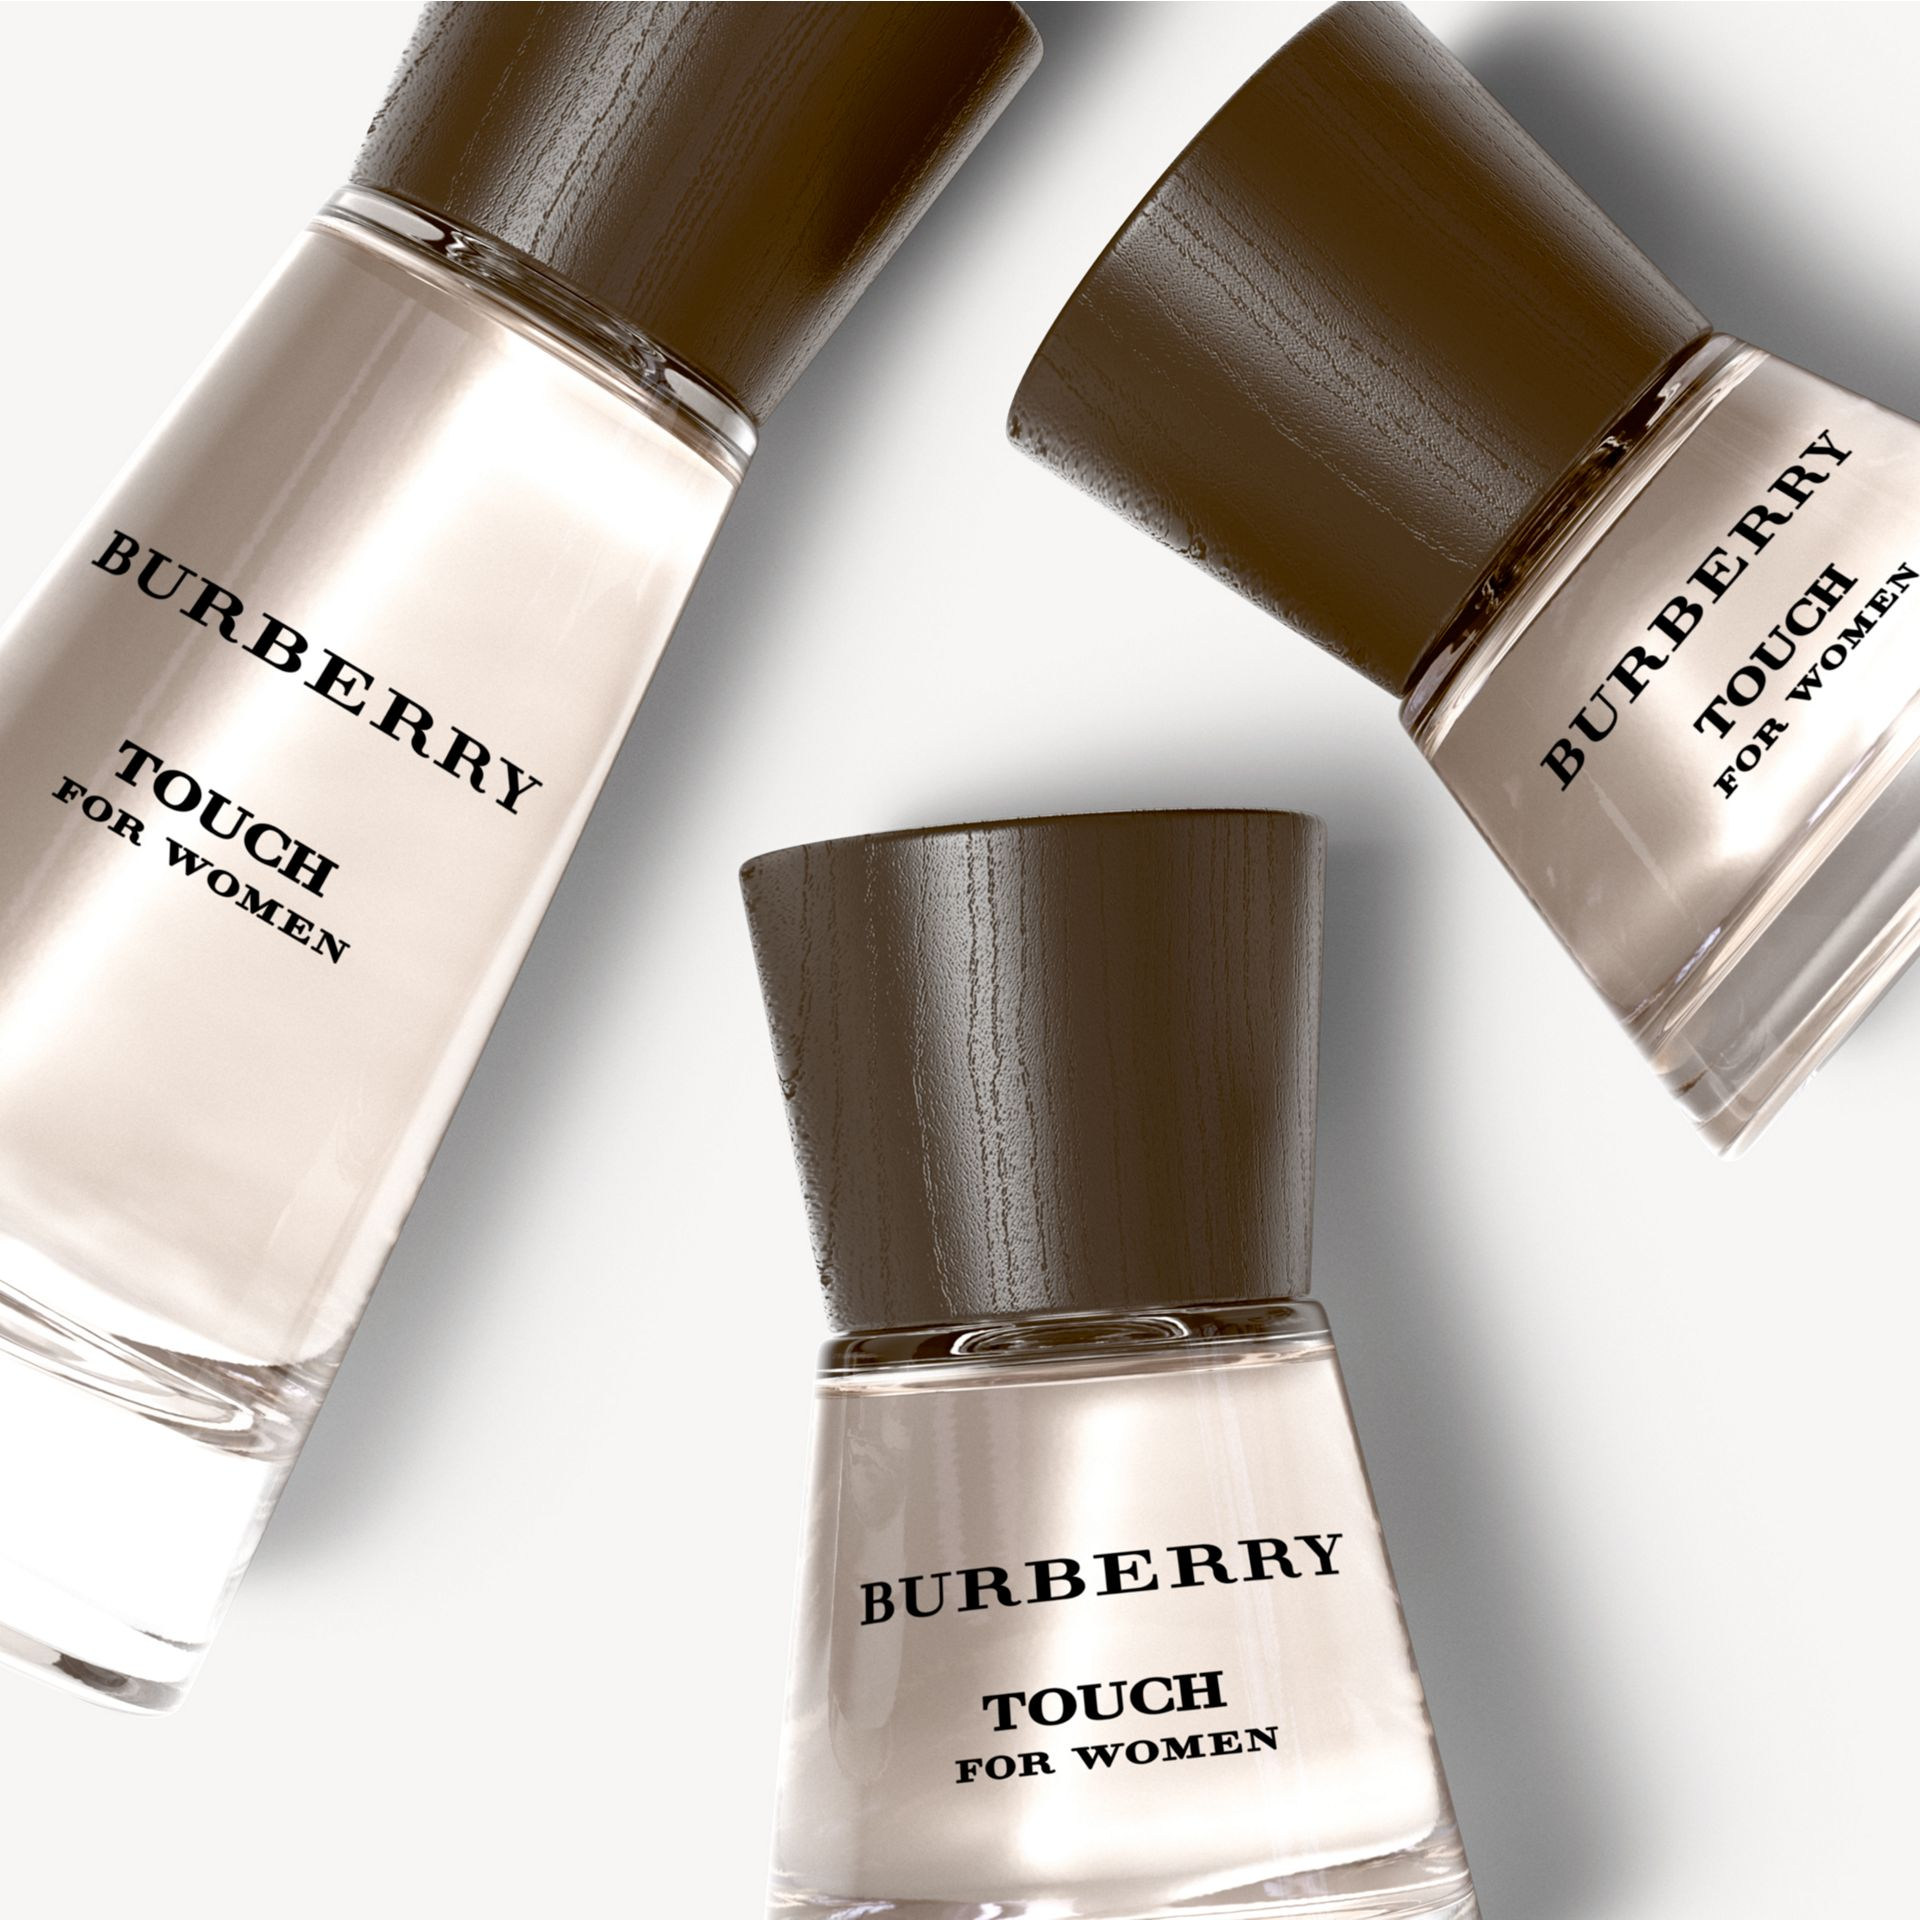 Burberry Touch For Women Eau De Parfum 30ml - gallery image 2